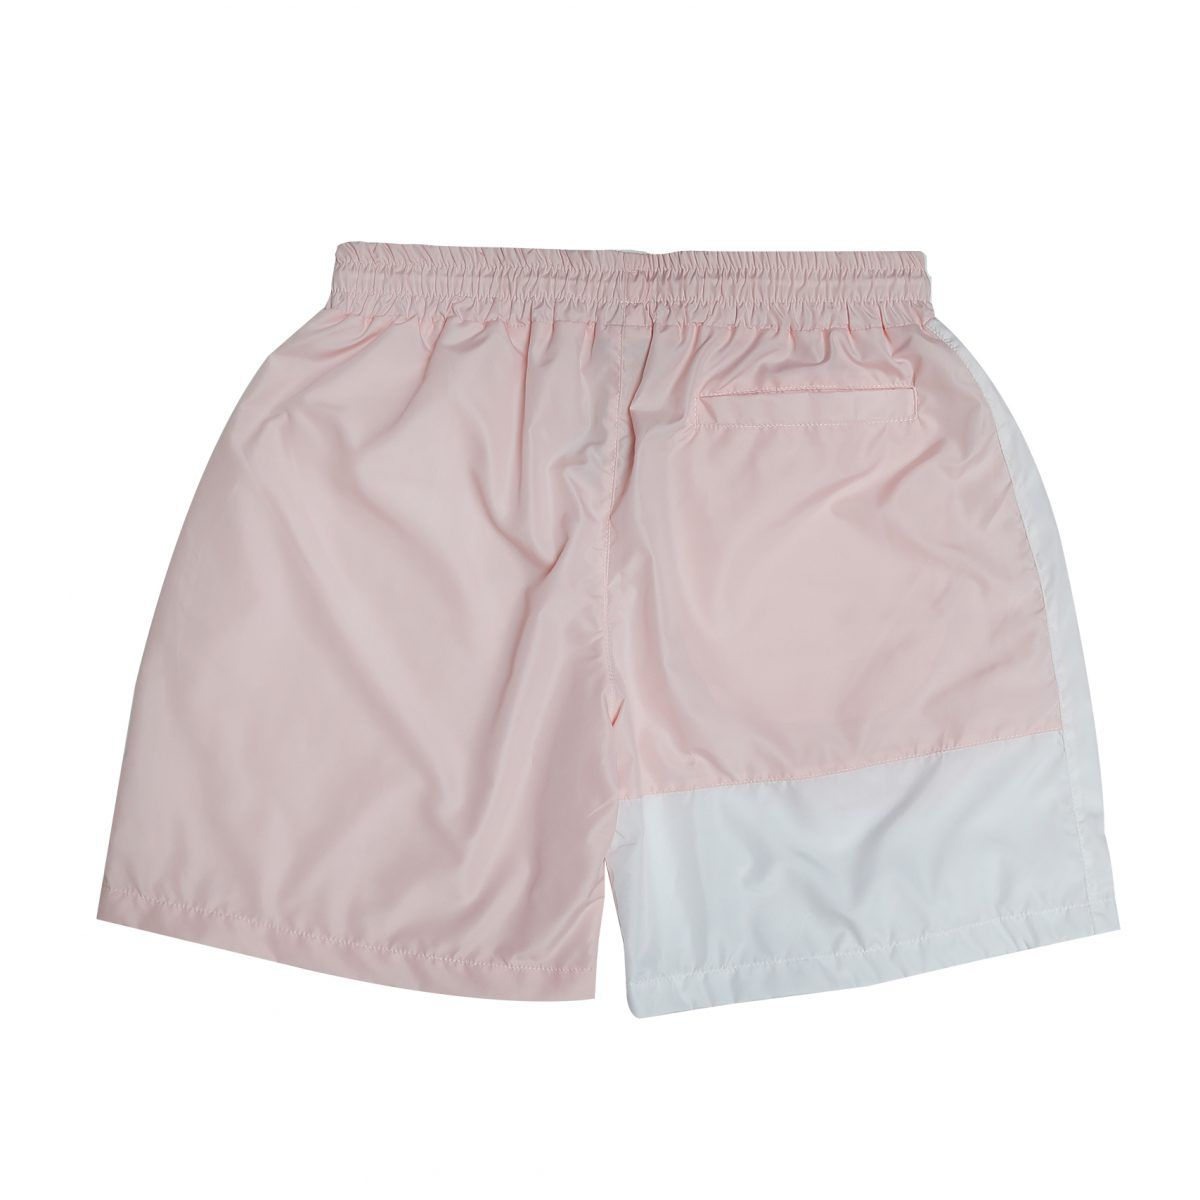 Shorts Pipe Bicolor White/ Pink Blaze Supply